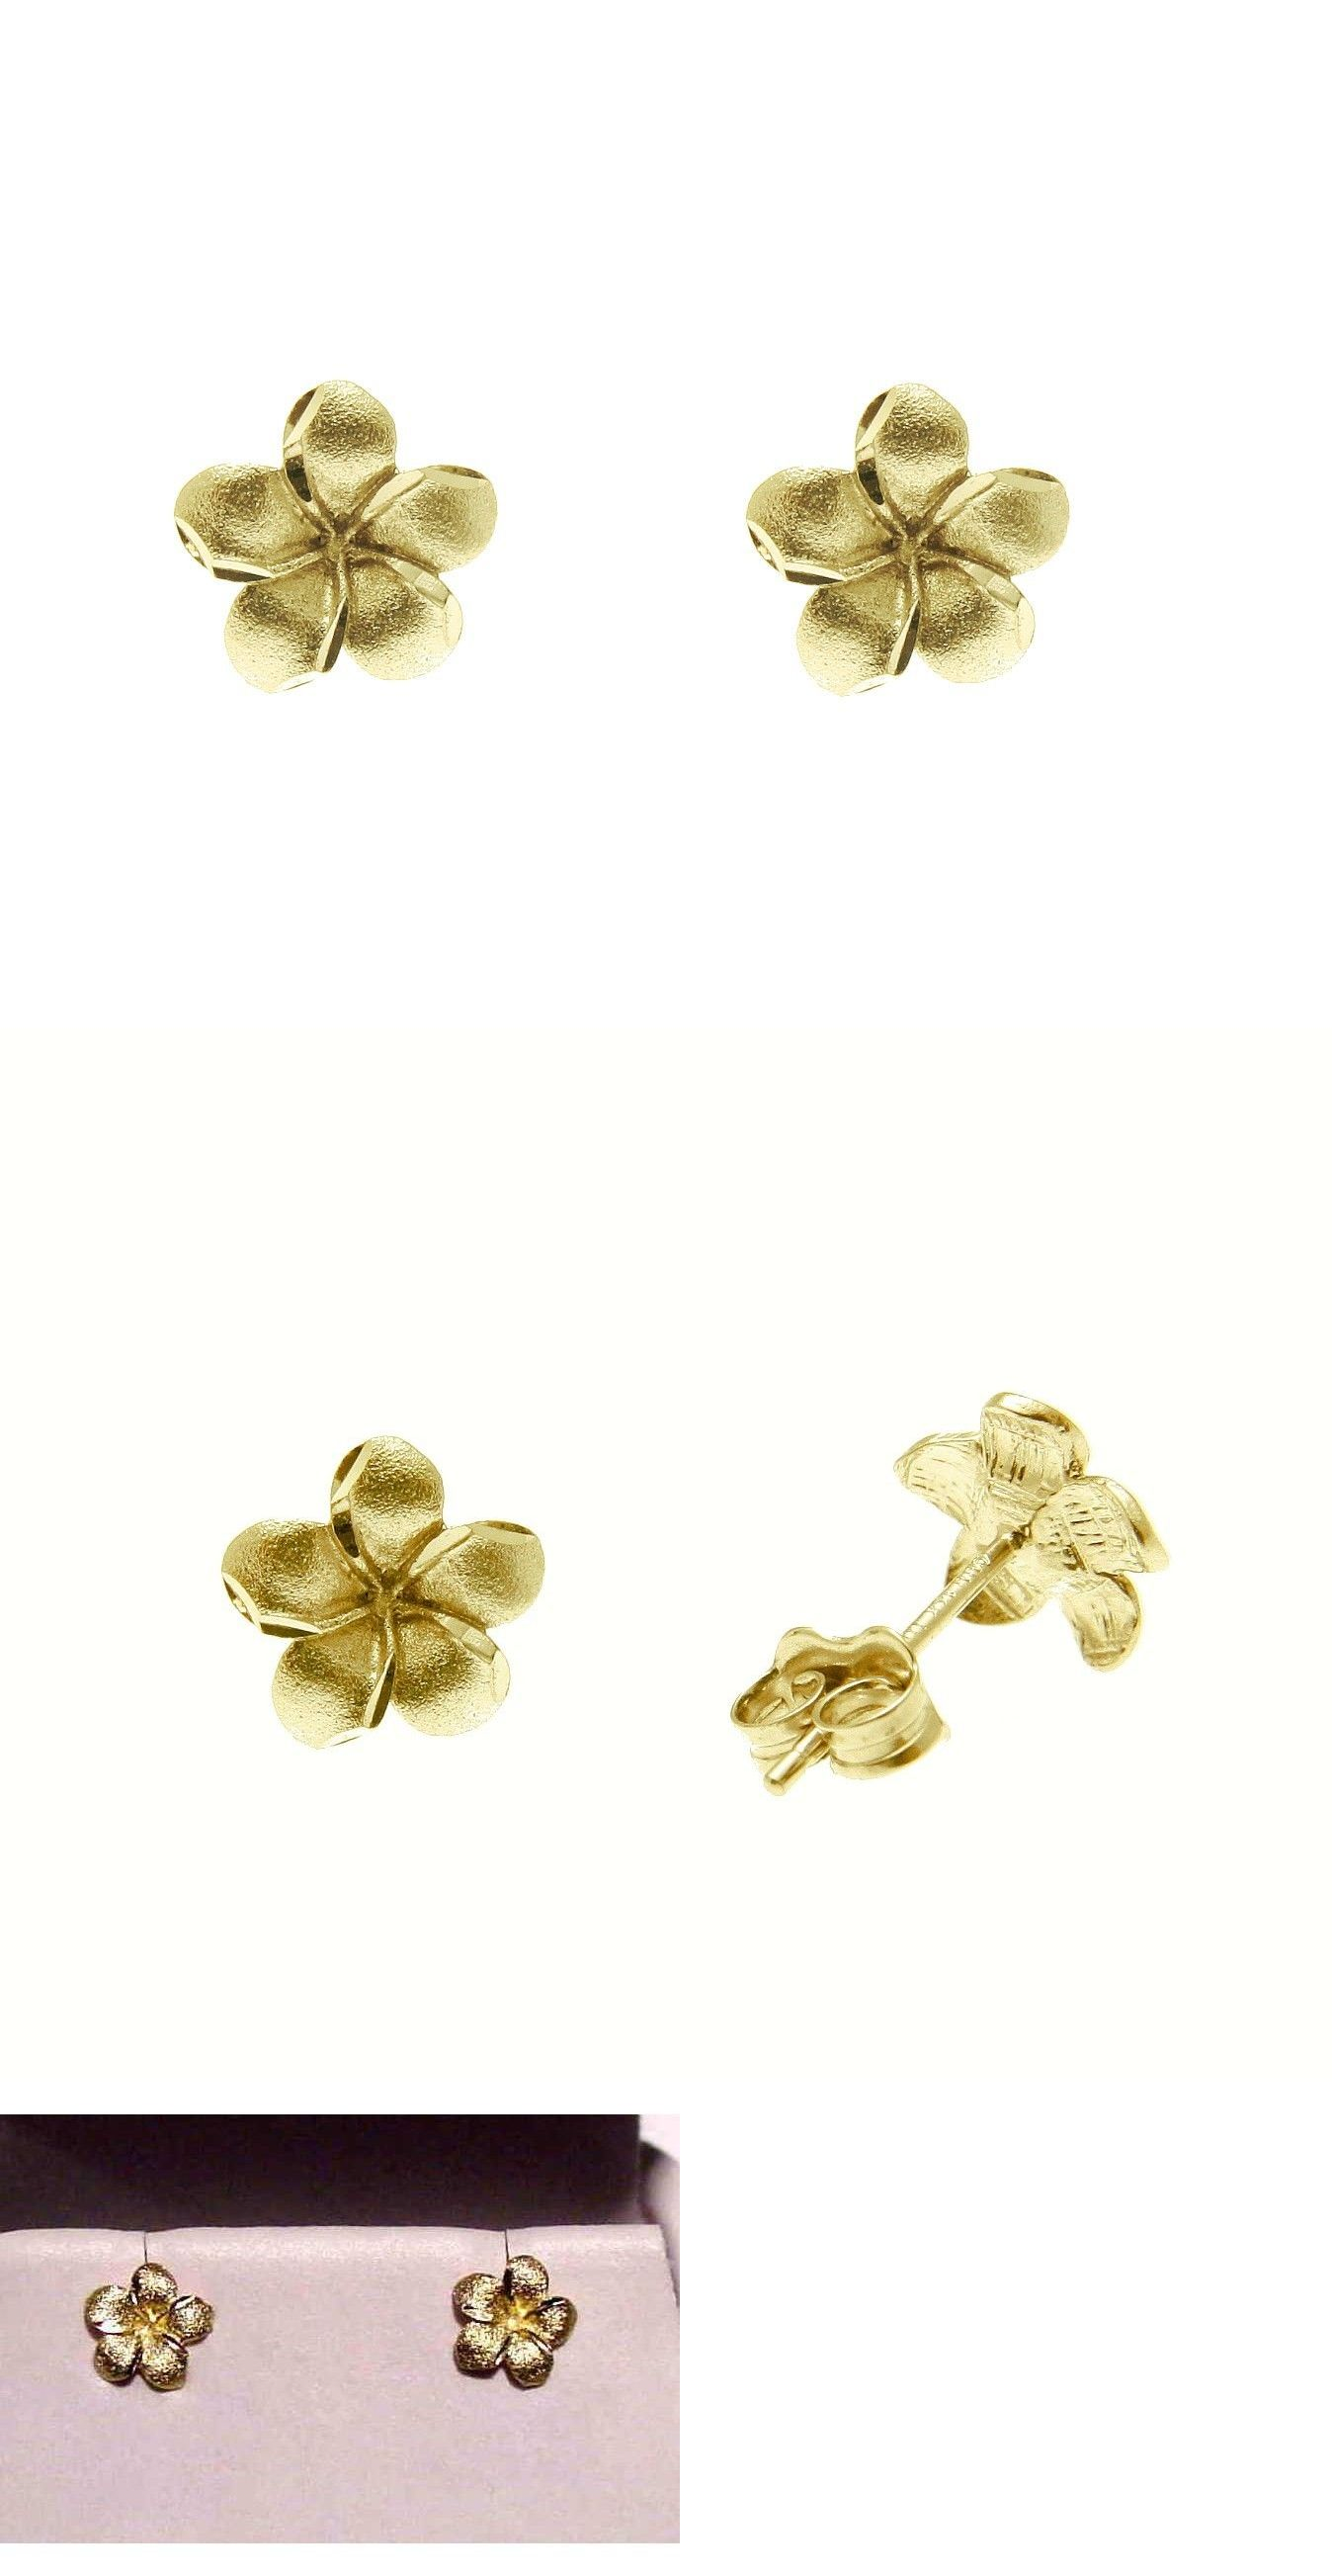 Precious Metal Without Stones 164319 7mm 14k Solid Yellow Gold